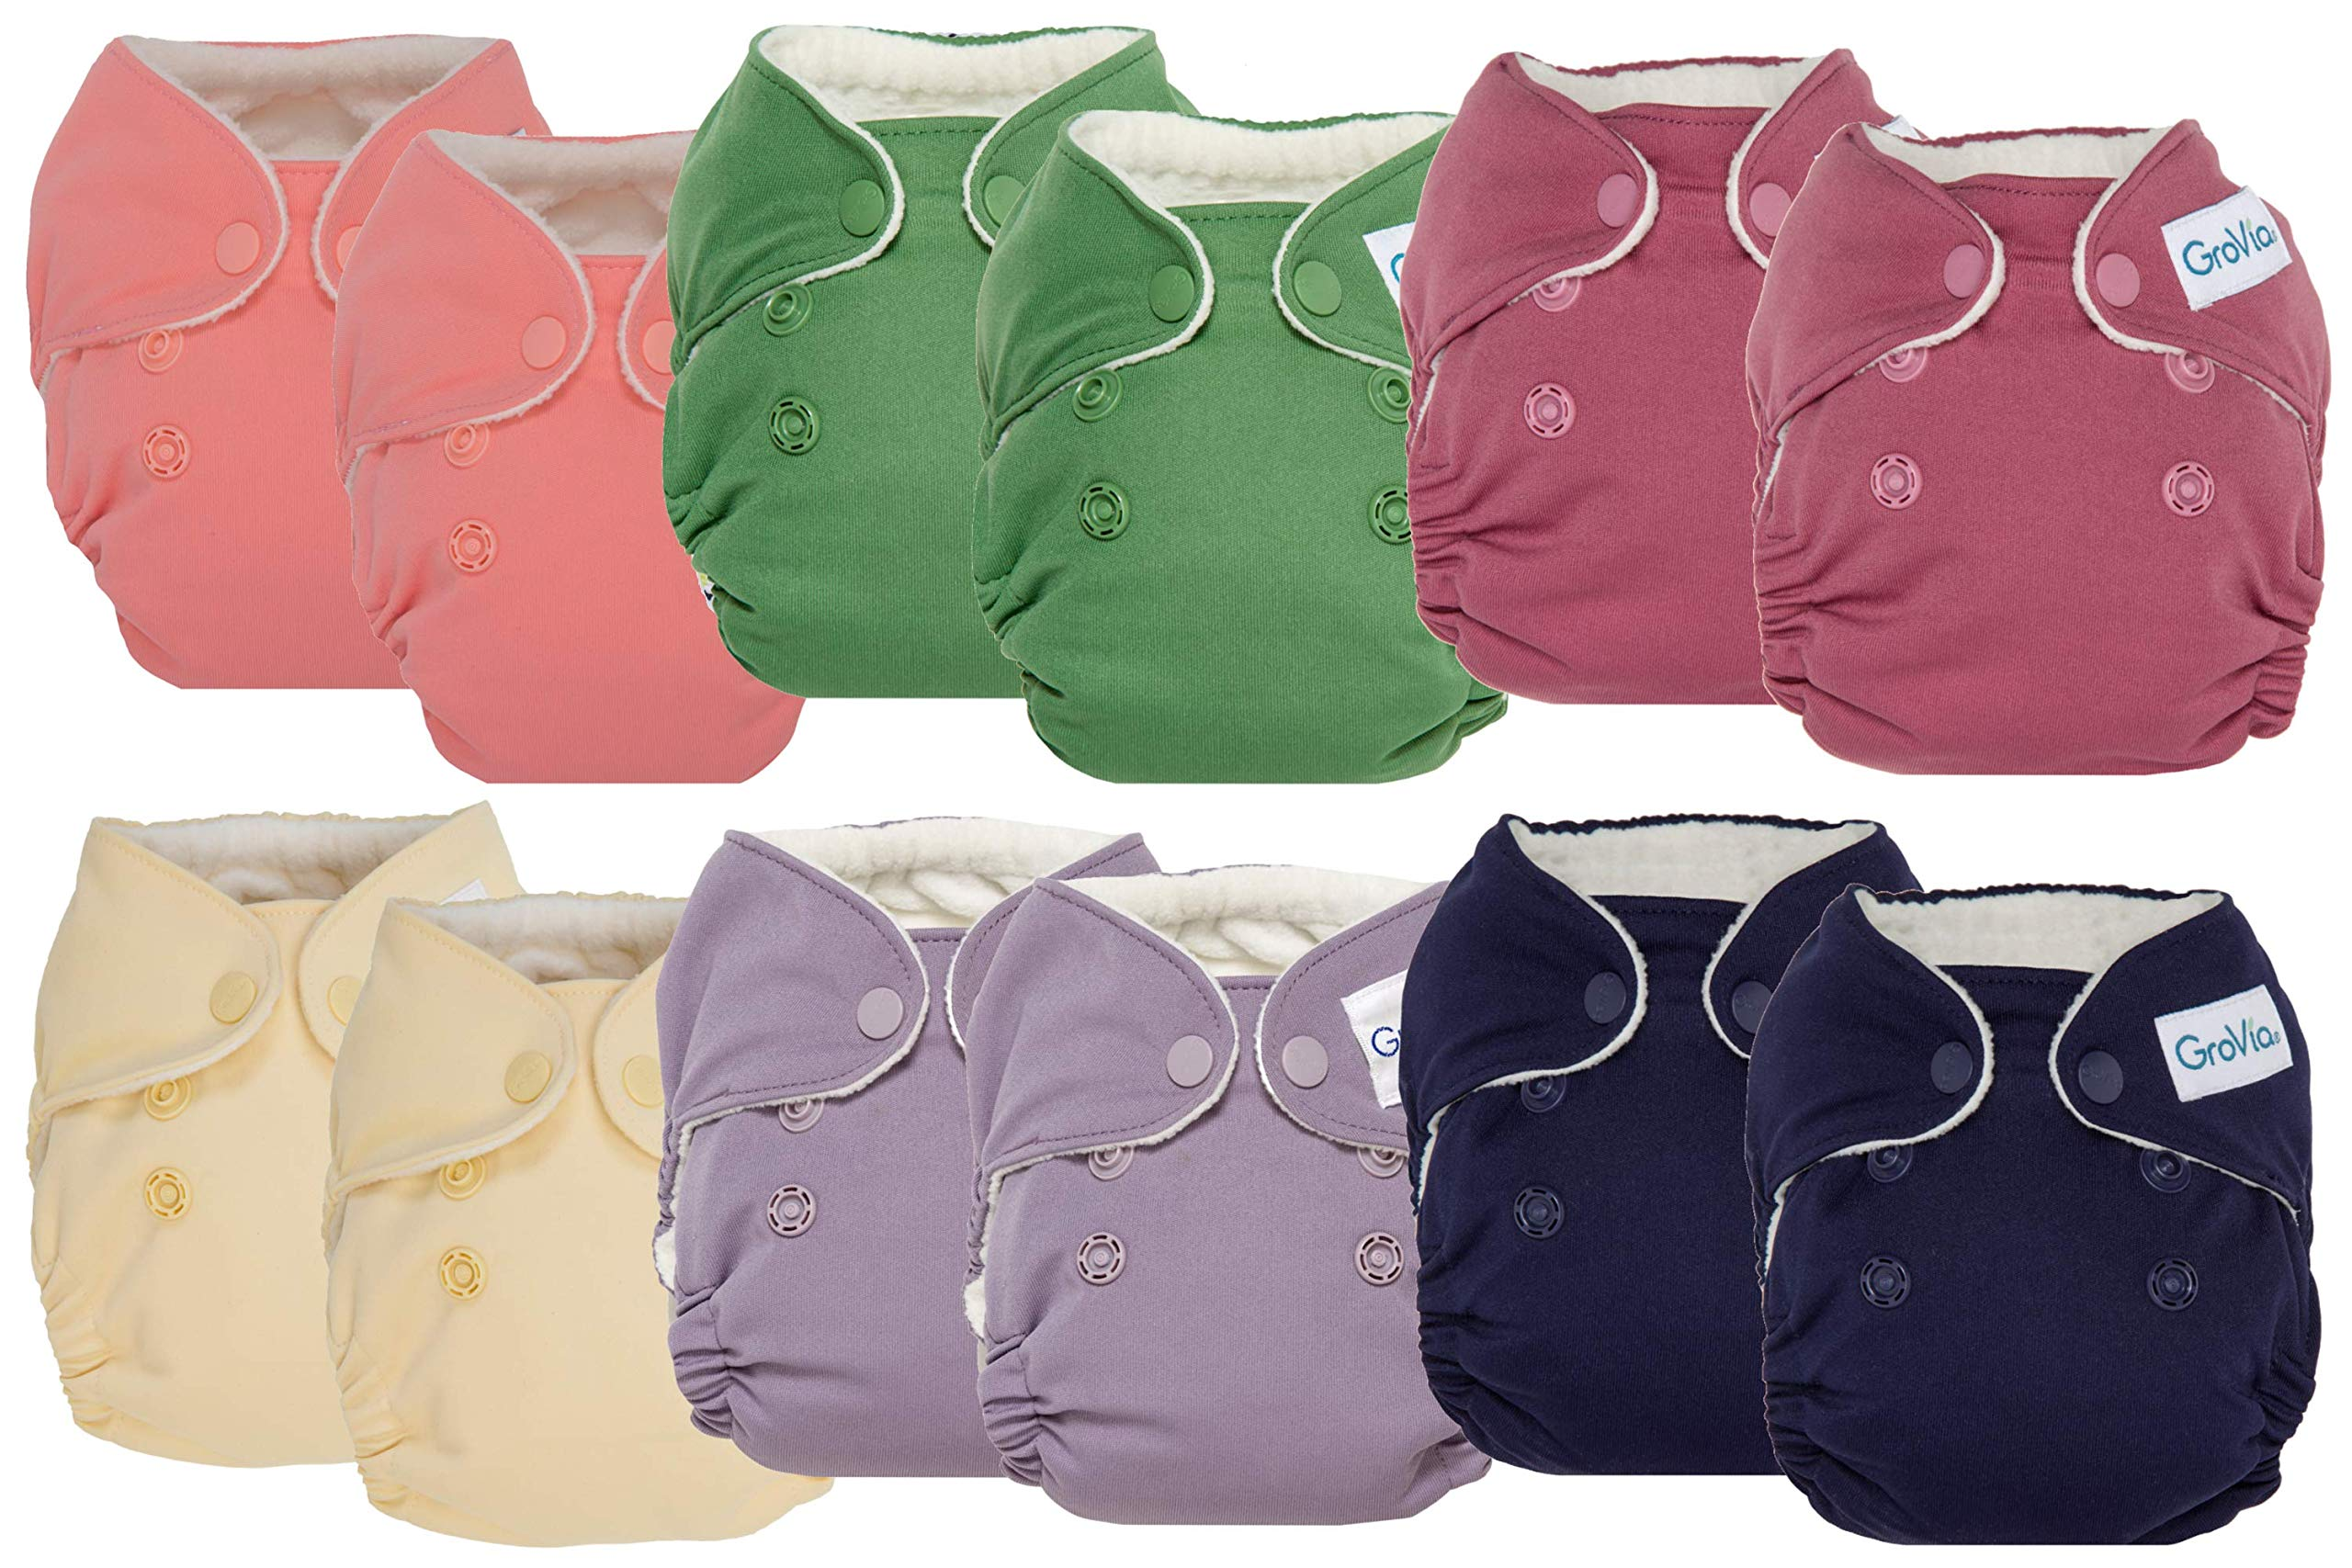 GroVia Newborn All in One Snap Reusable Cloth Diaper (AIO) - 12 Pack (Color Mix 4)